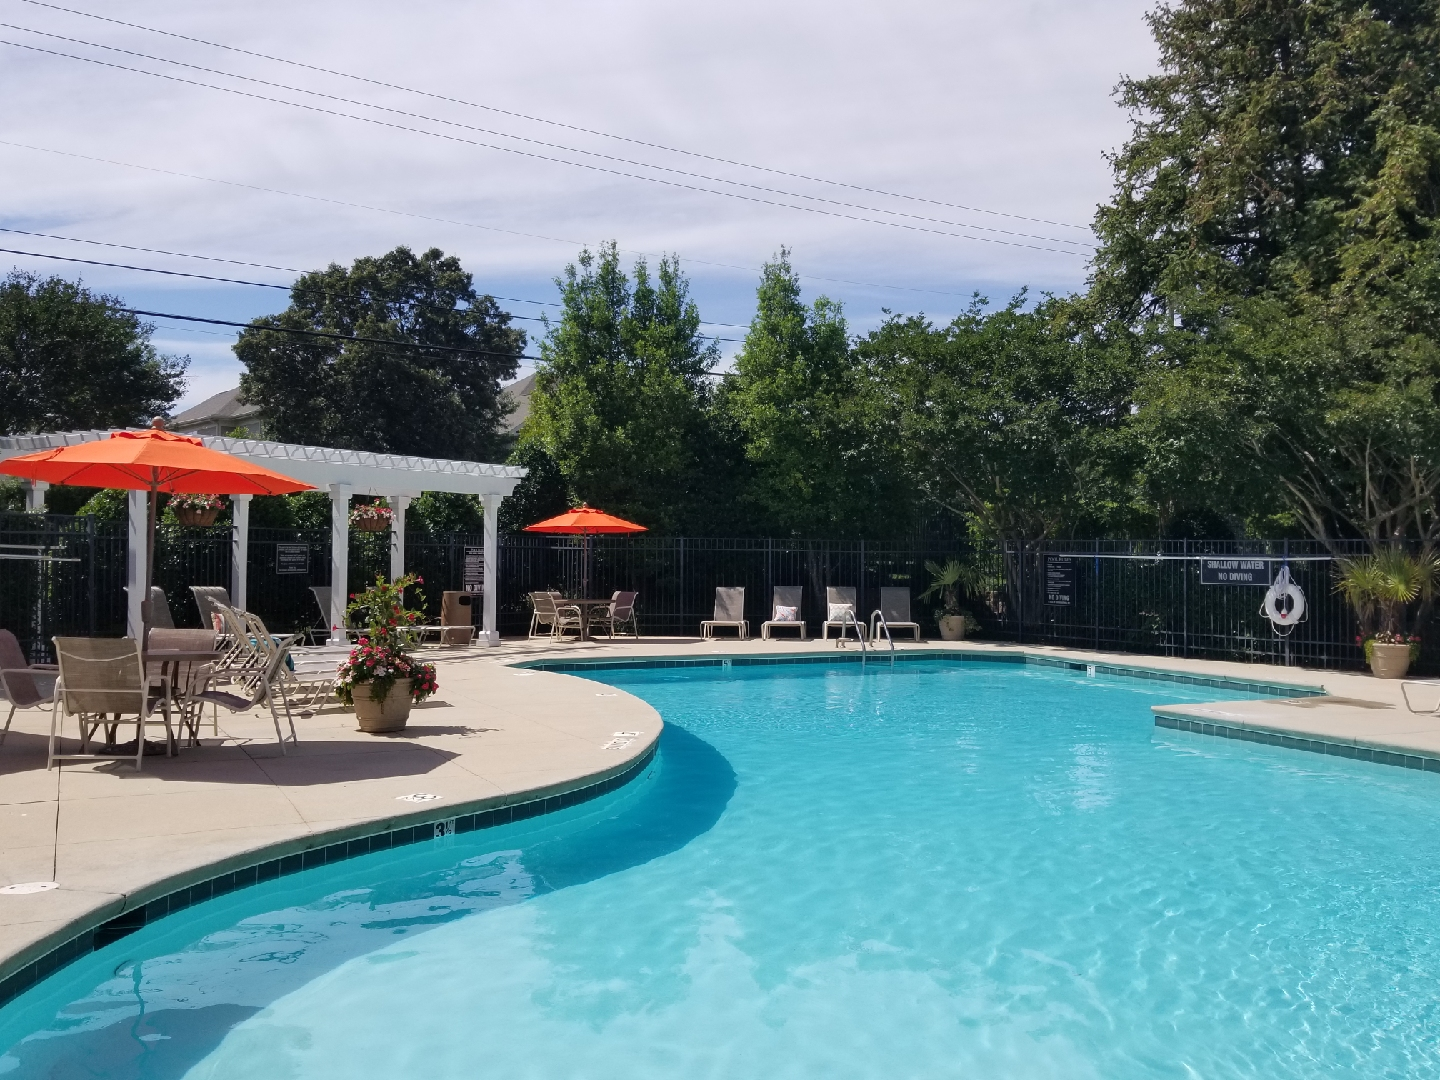 Enclave at Crossroads Apartments